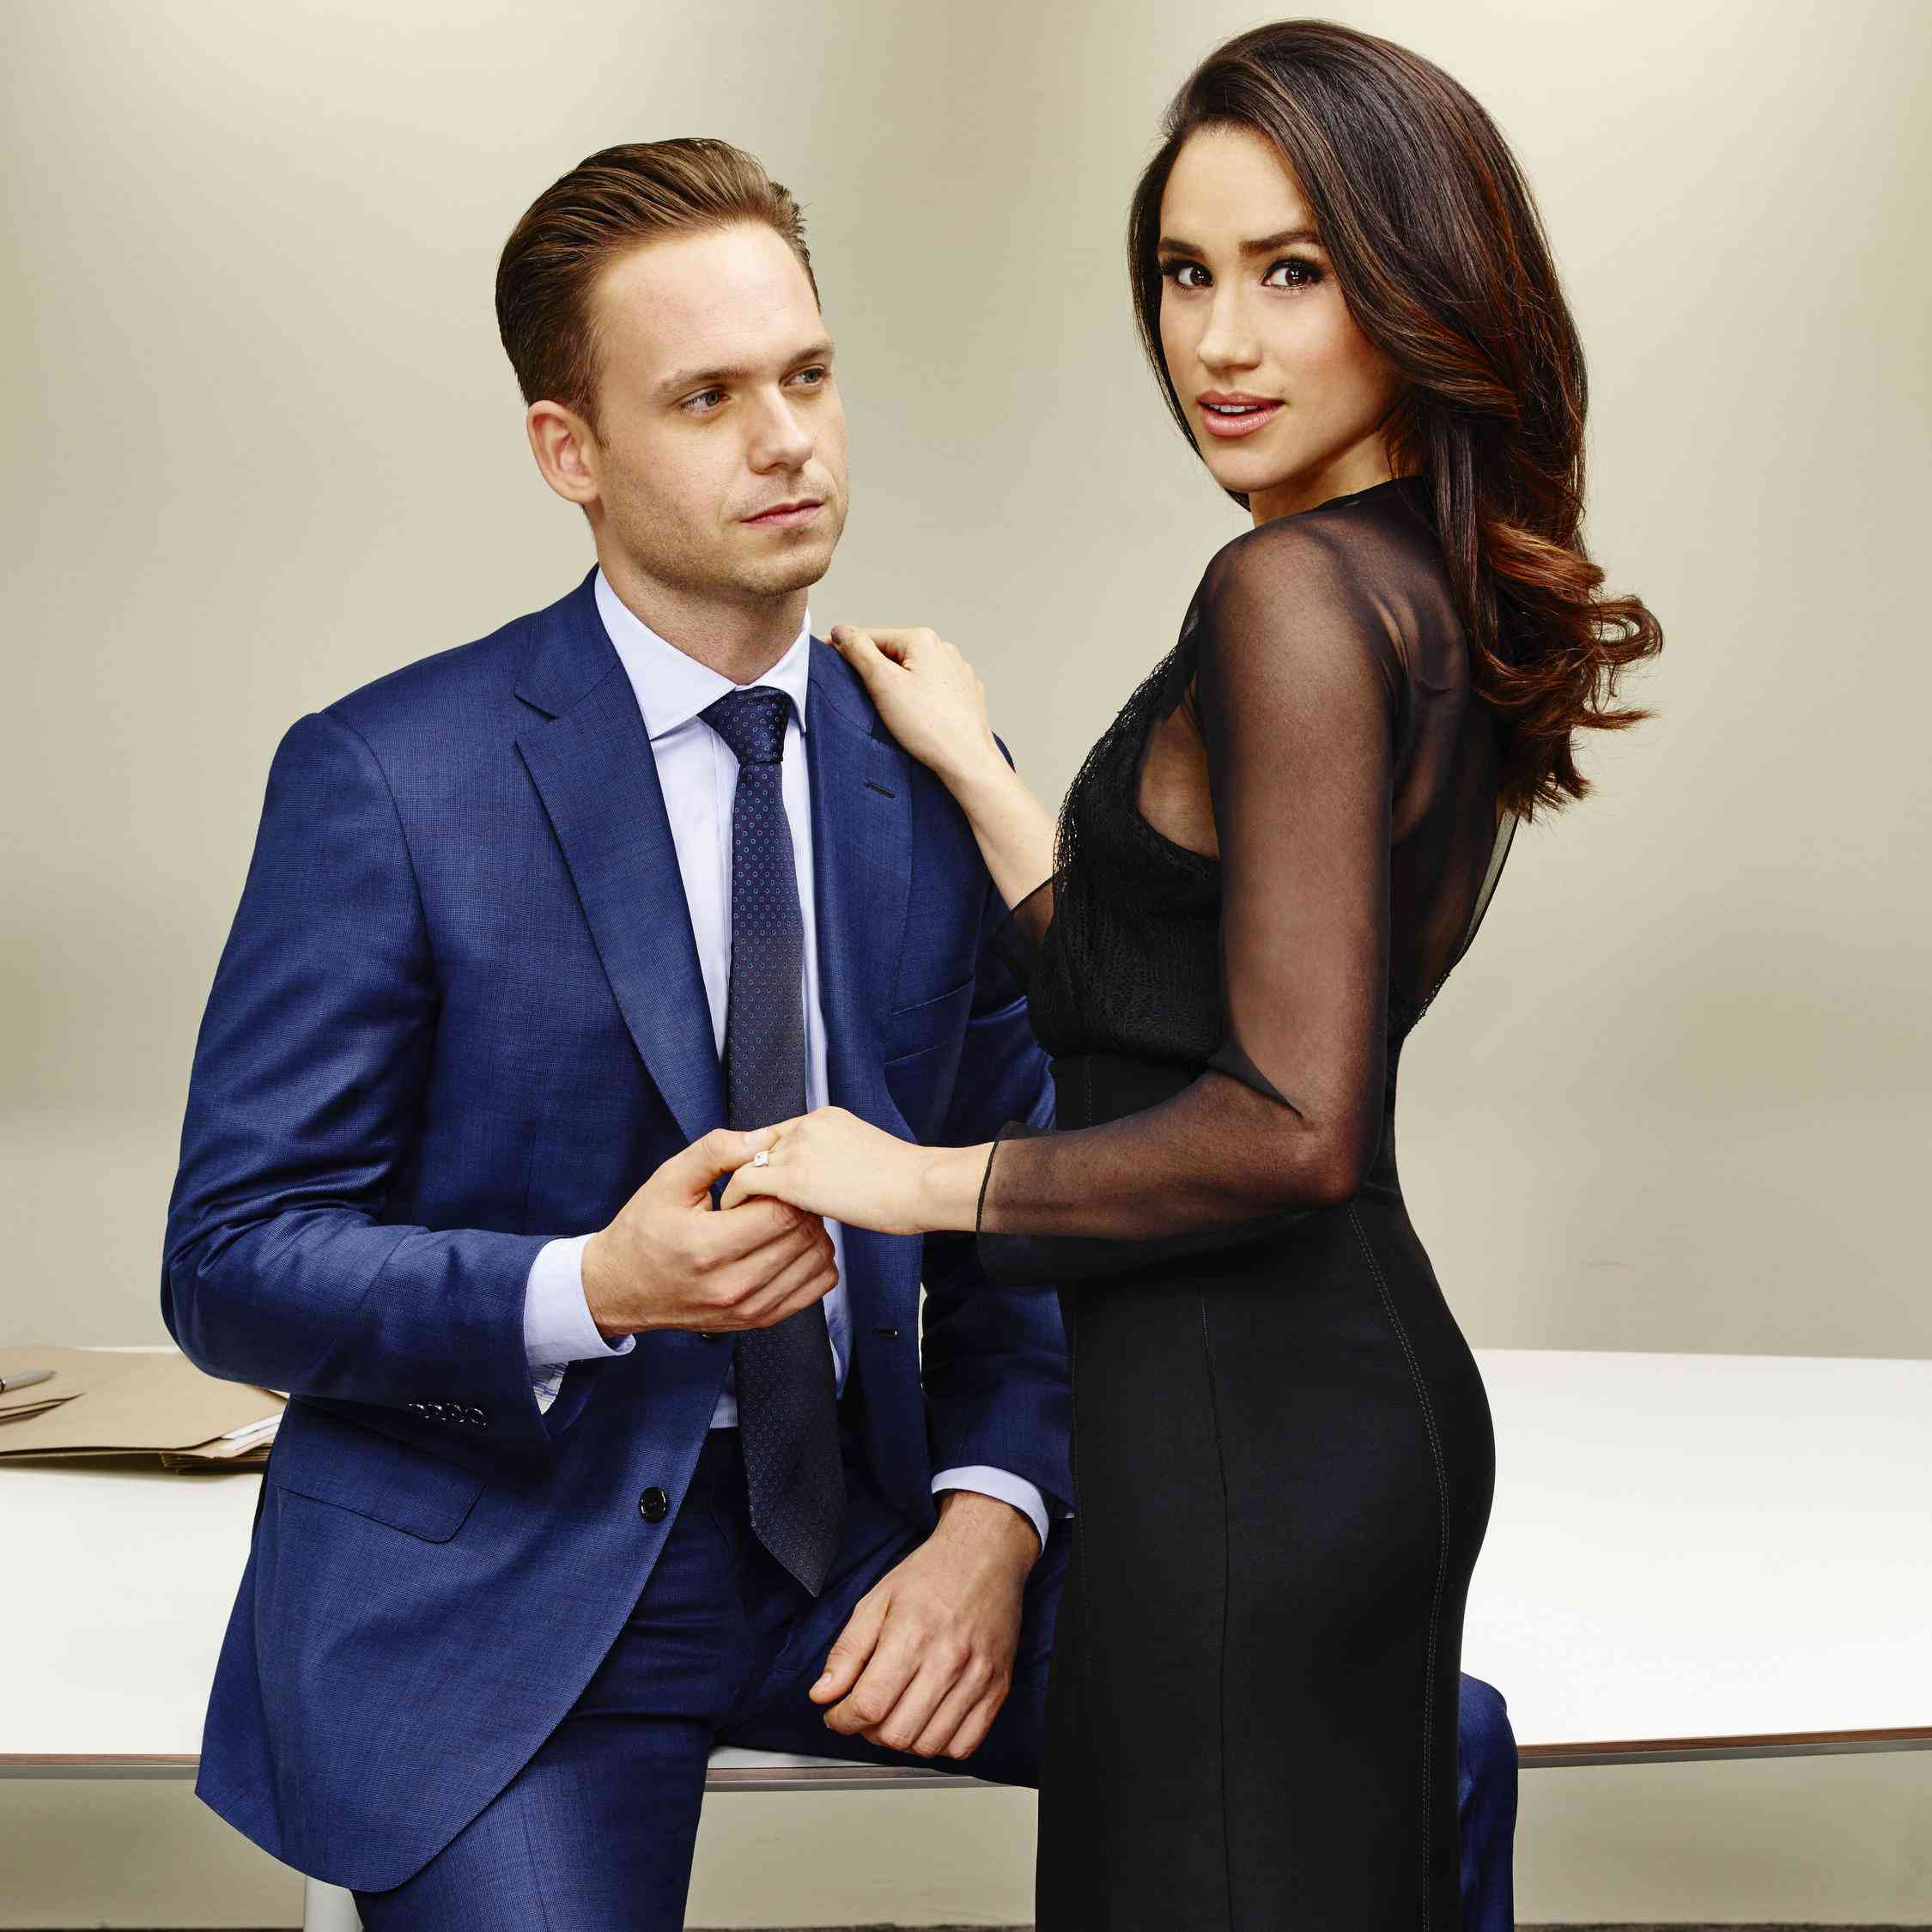 suits makes reference to meghan markle s new life the express tribune suits makes reference to meghan